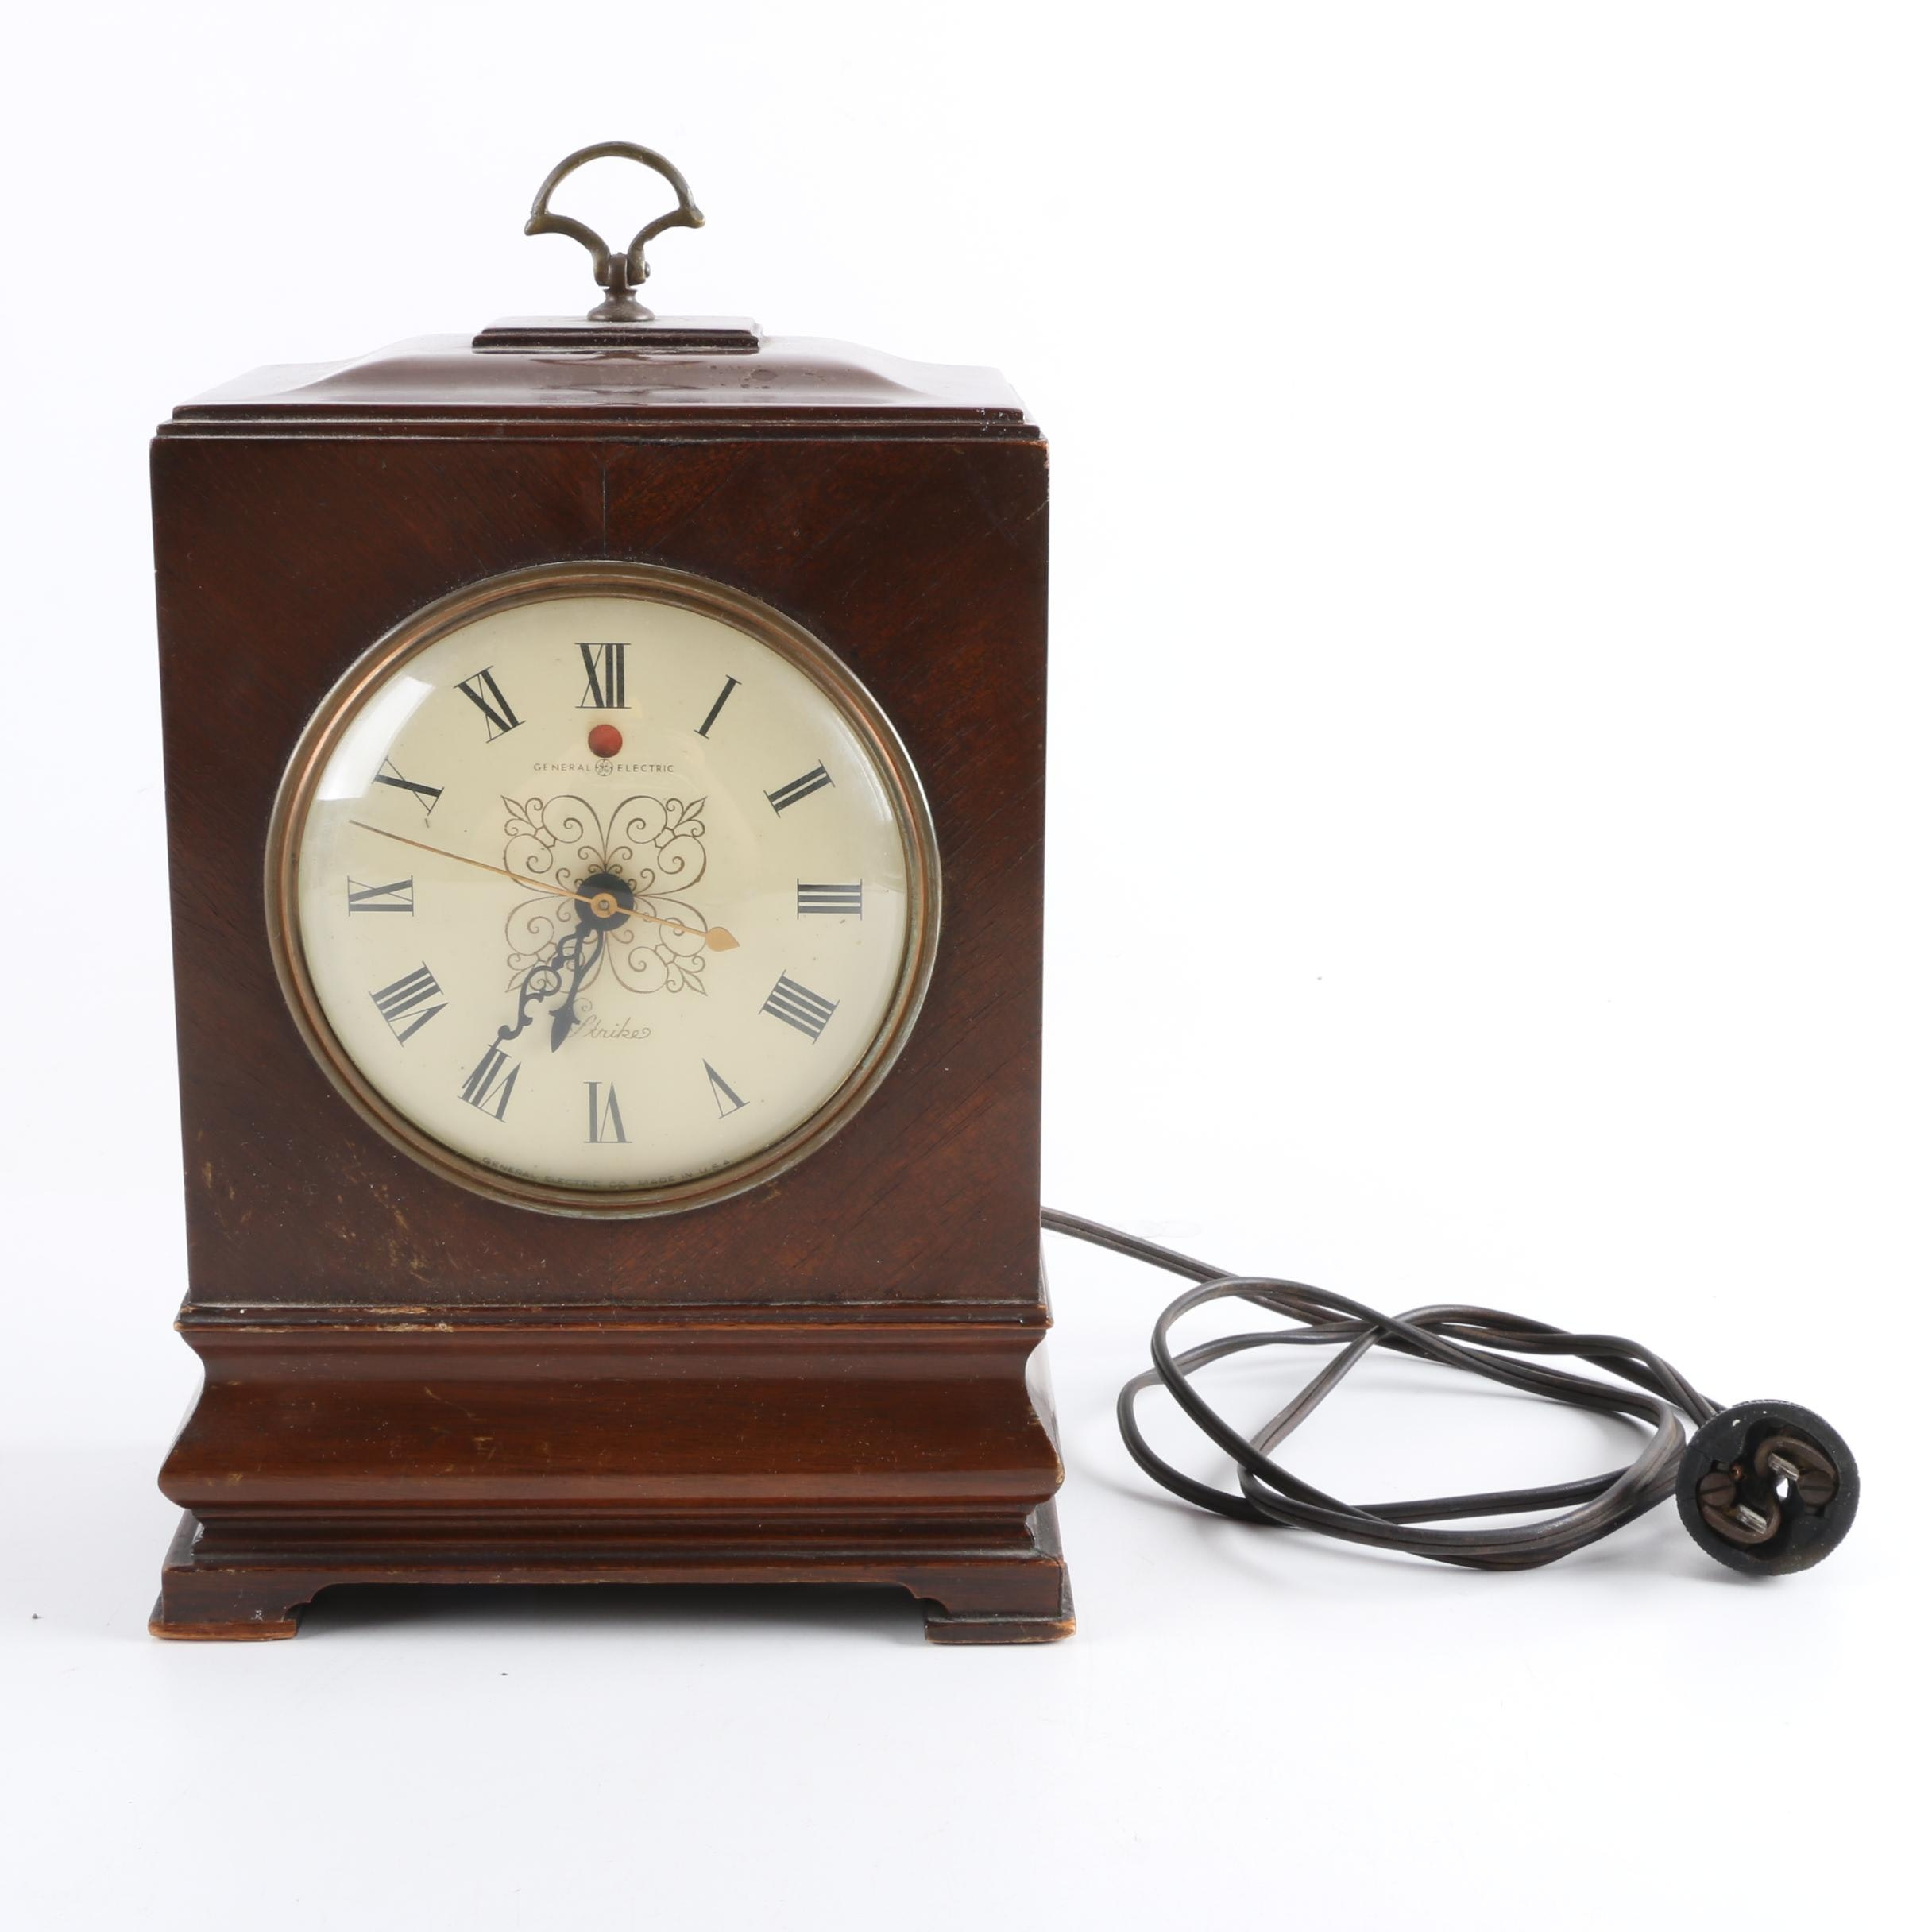 General Electric Mantle Clock